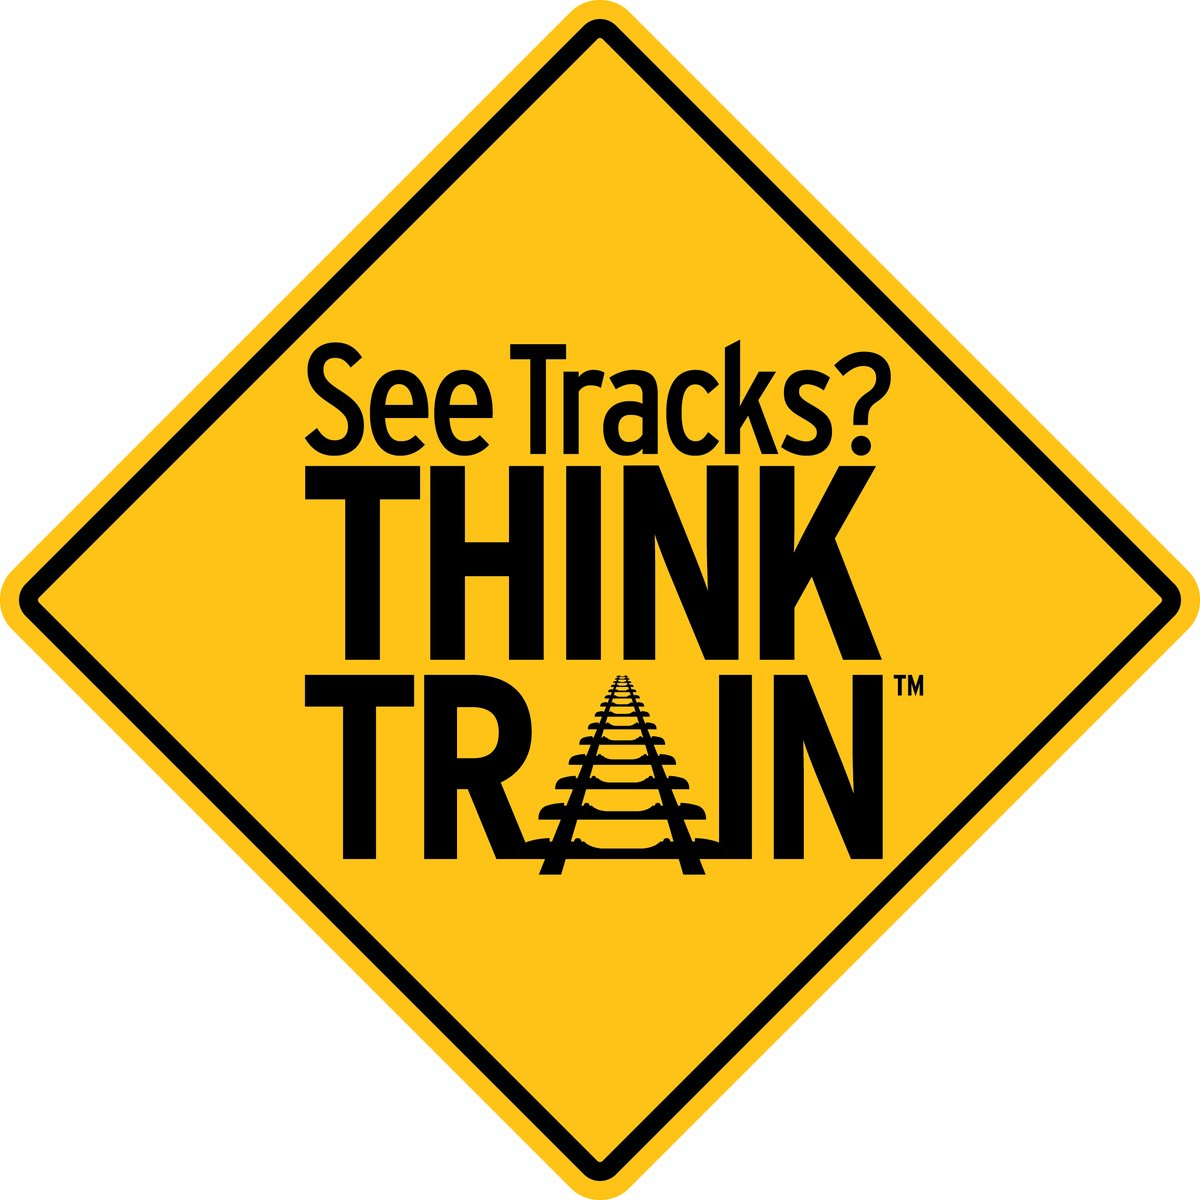 Did you know? A typical freight train can take more than a mile to stop, even when emergency brakes are applied - the distance of 18 football fields! Please be careful.